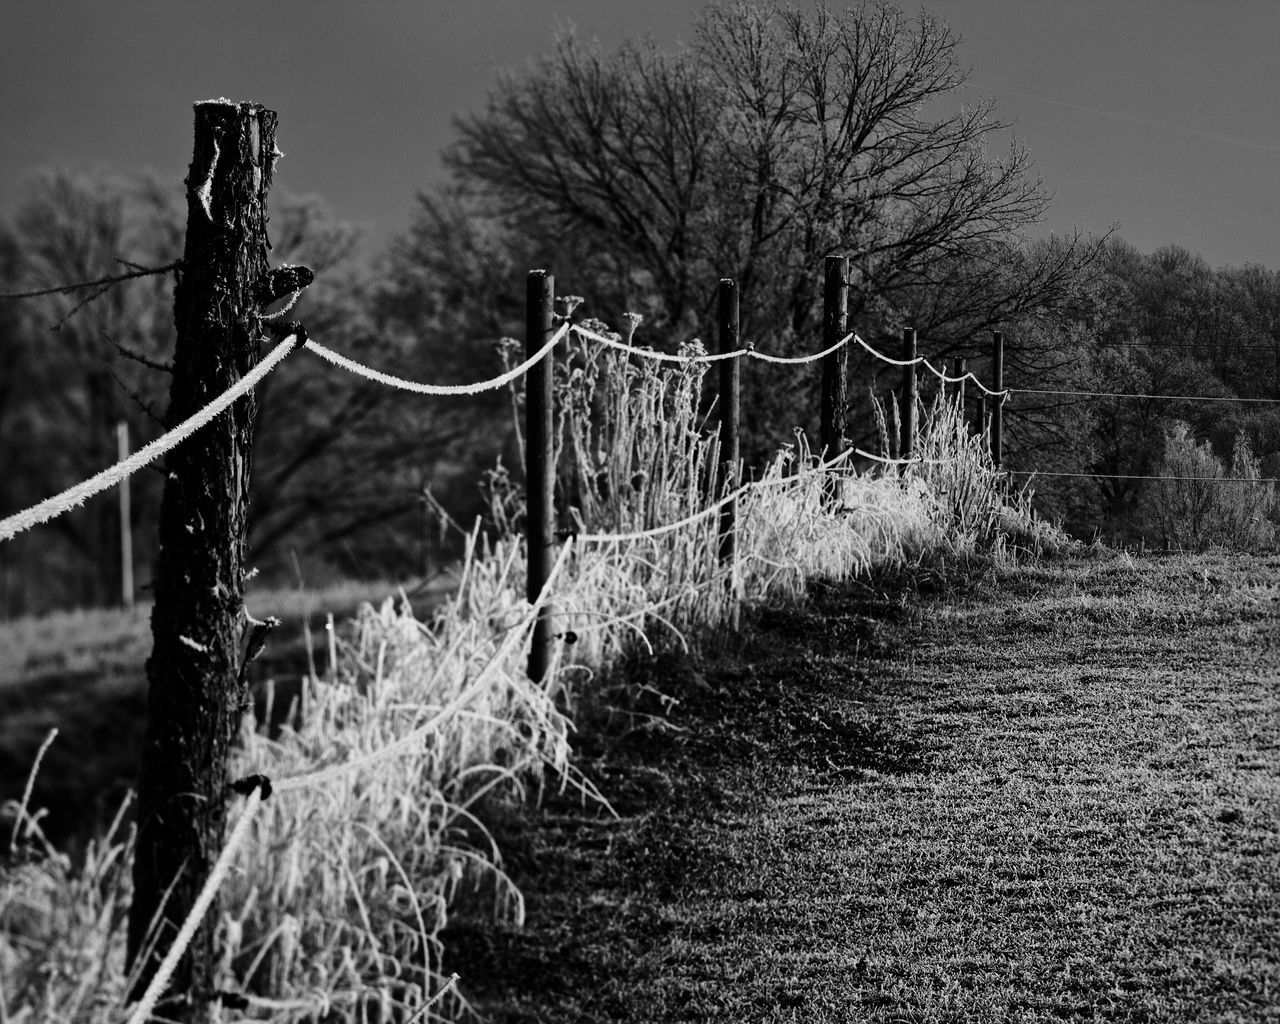 Nature Tree Bare Tree No People Growth Tranquility Outdoors Plant Beauty In Nature Grass Day Sky White Frost Frozen Nature Fence Posts Glowing EyeEmNewHere EyeEmNewHere